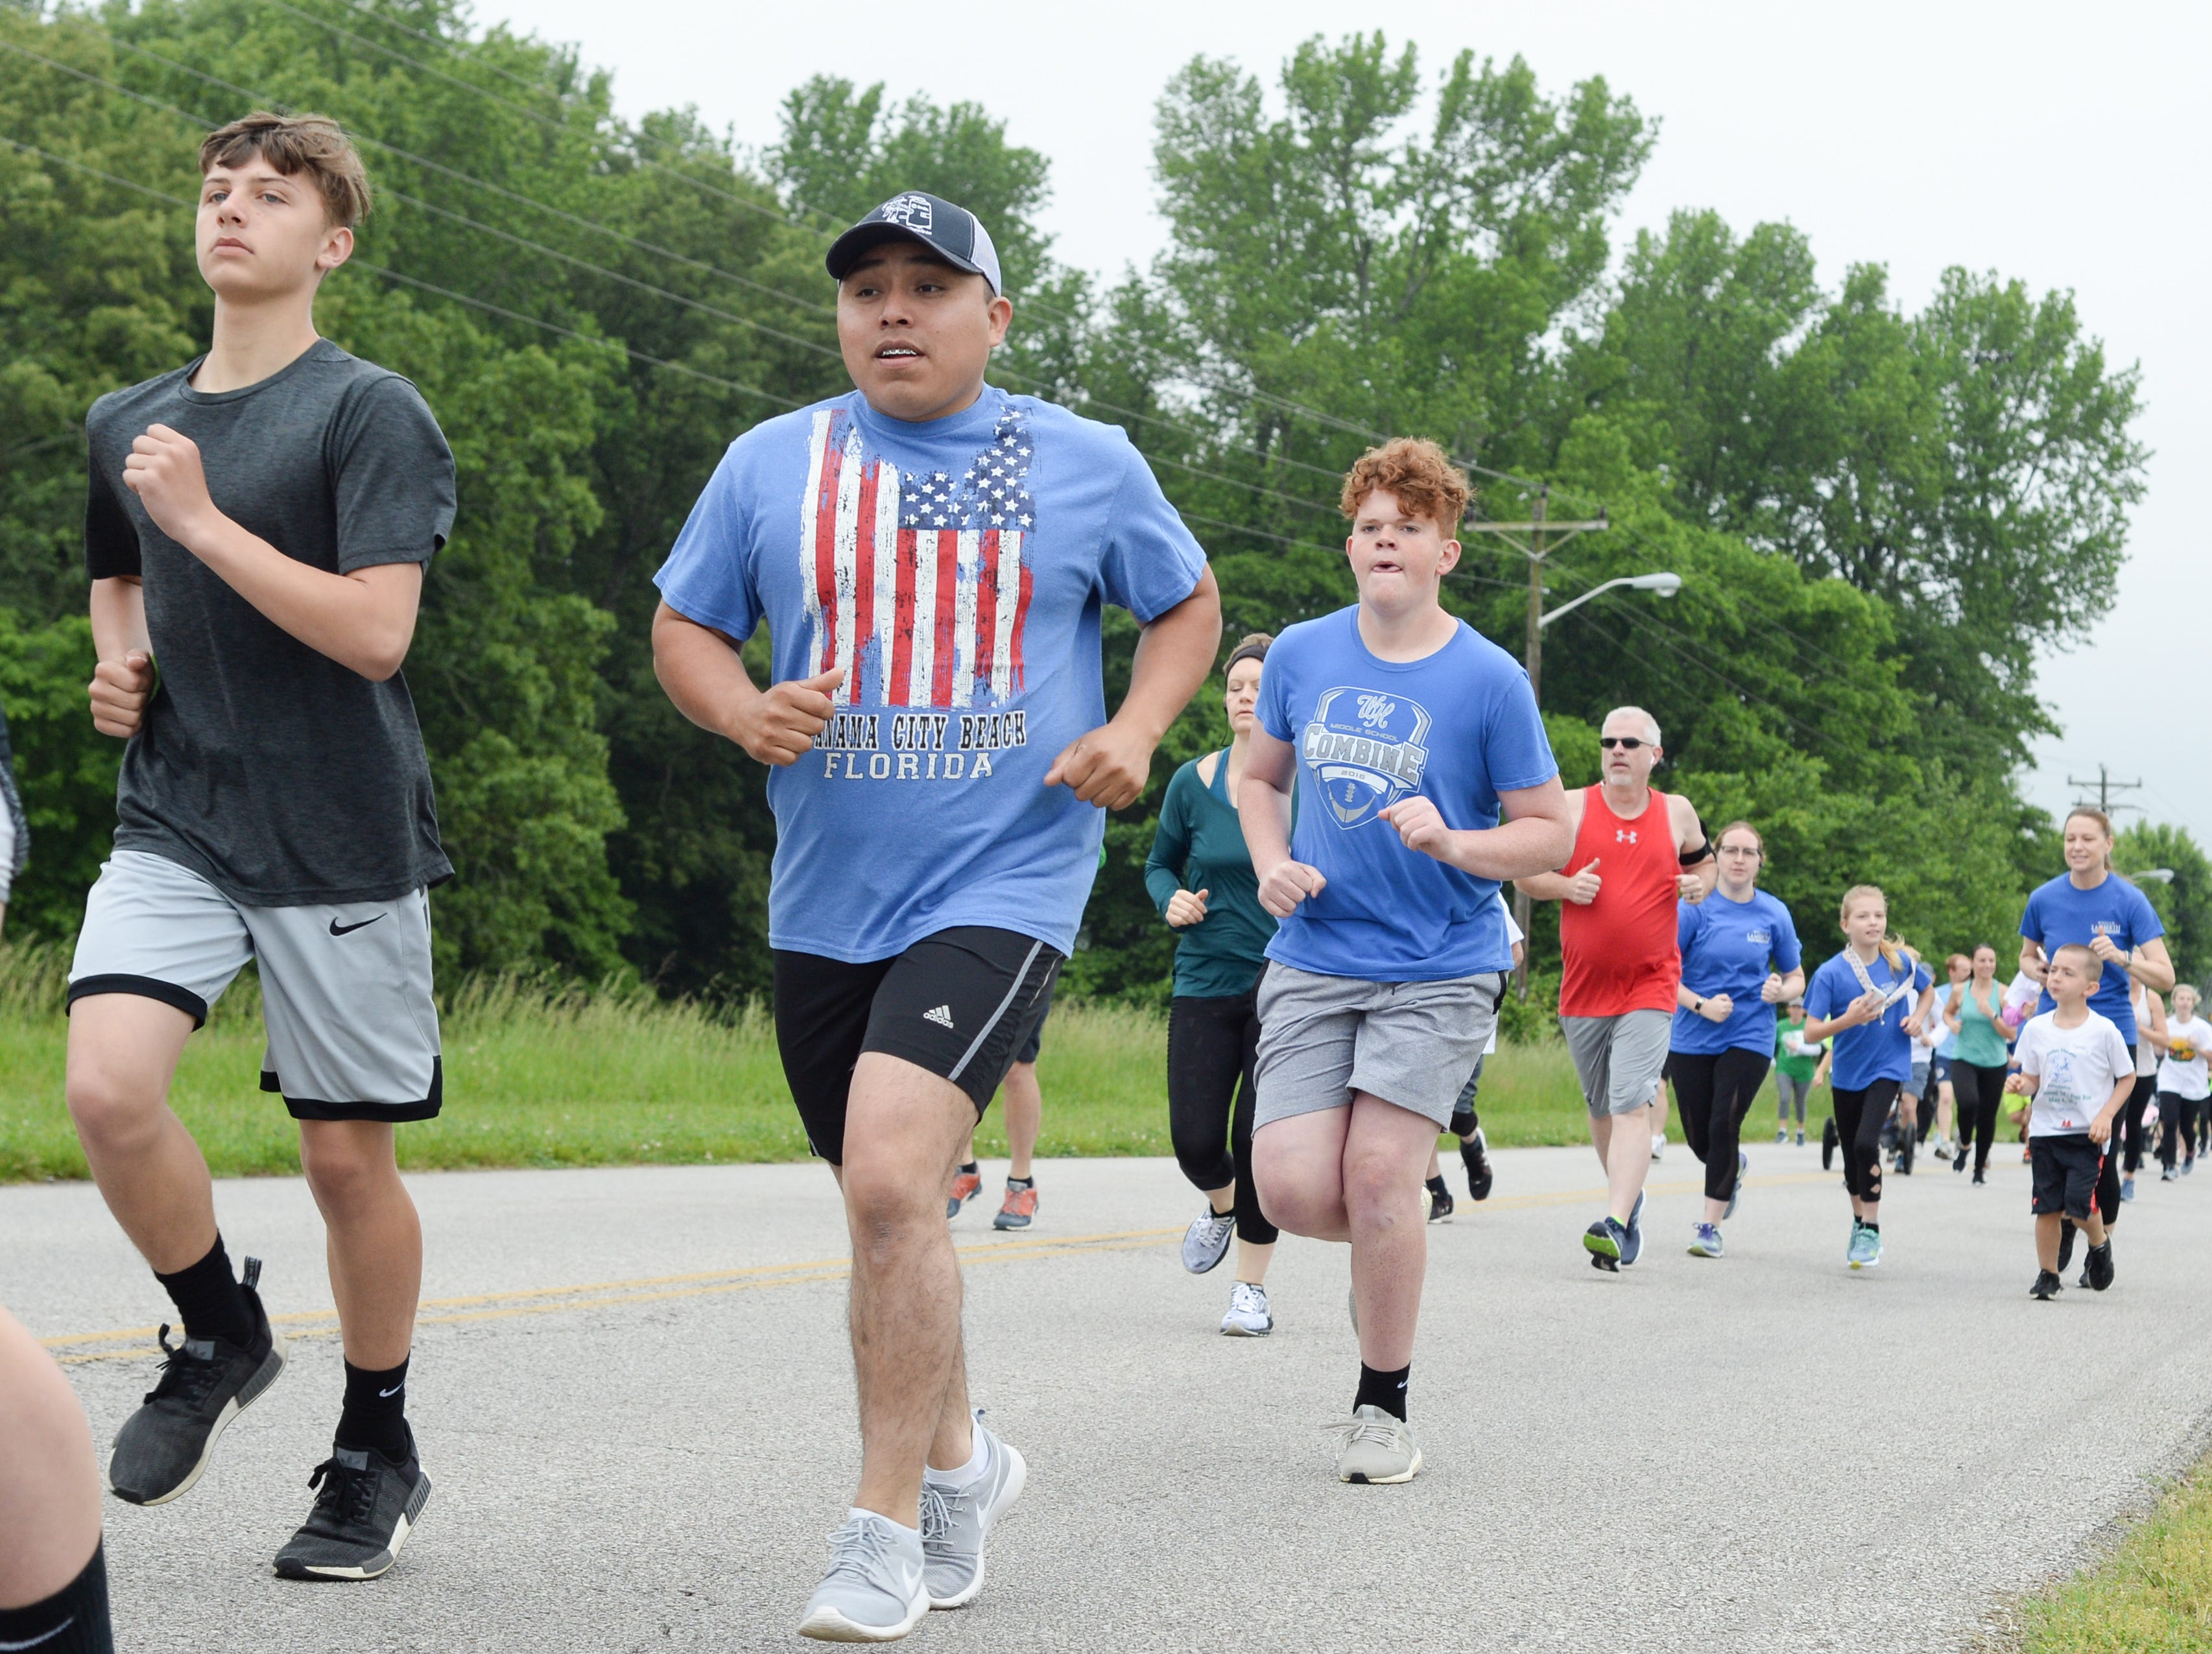 Community support was strong for the Strawberry Stride at Portland High School during the 78th Annual Middle Tennessee Strawberry Festival presented by the Portland Chamber of Commerce in Portland on Saturday, May 11.